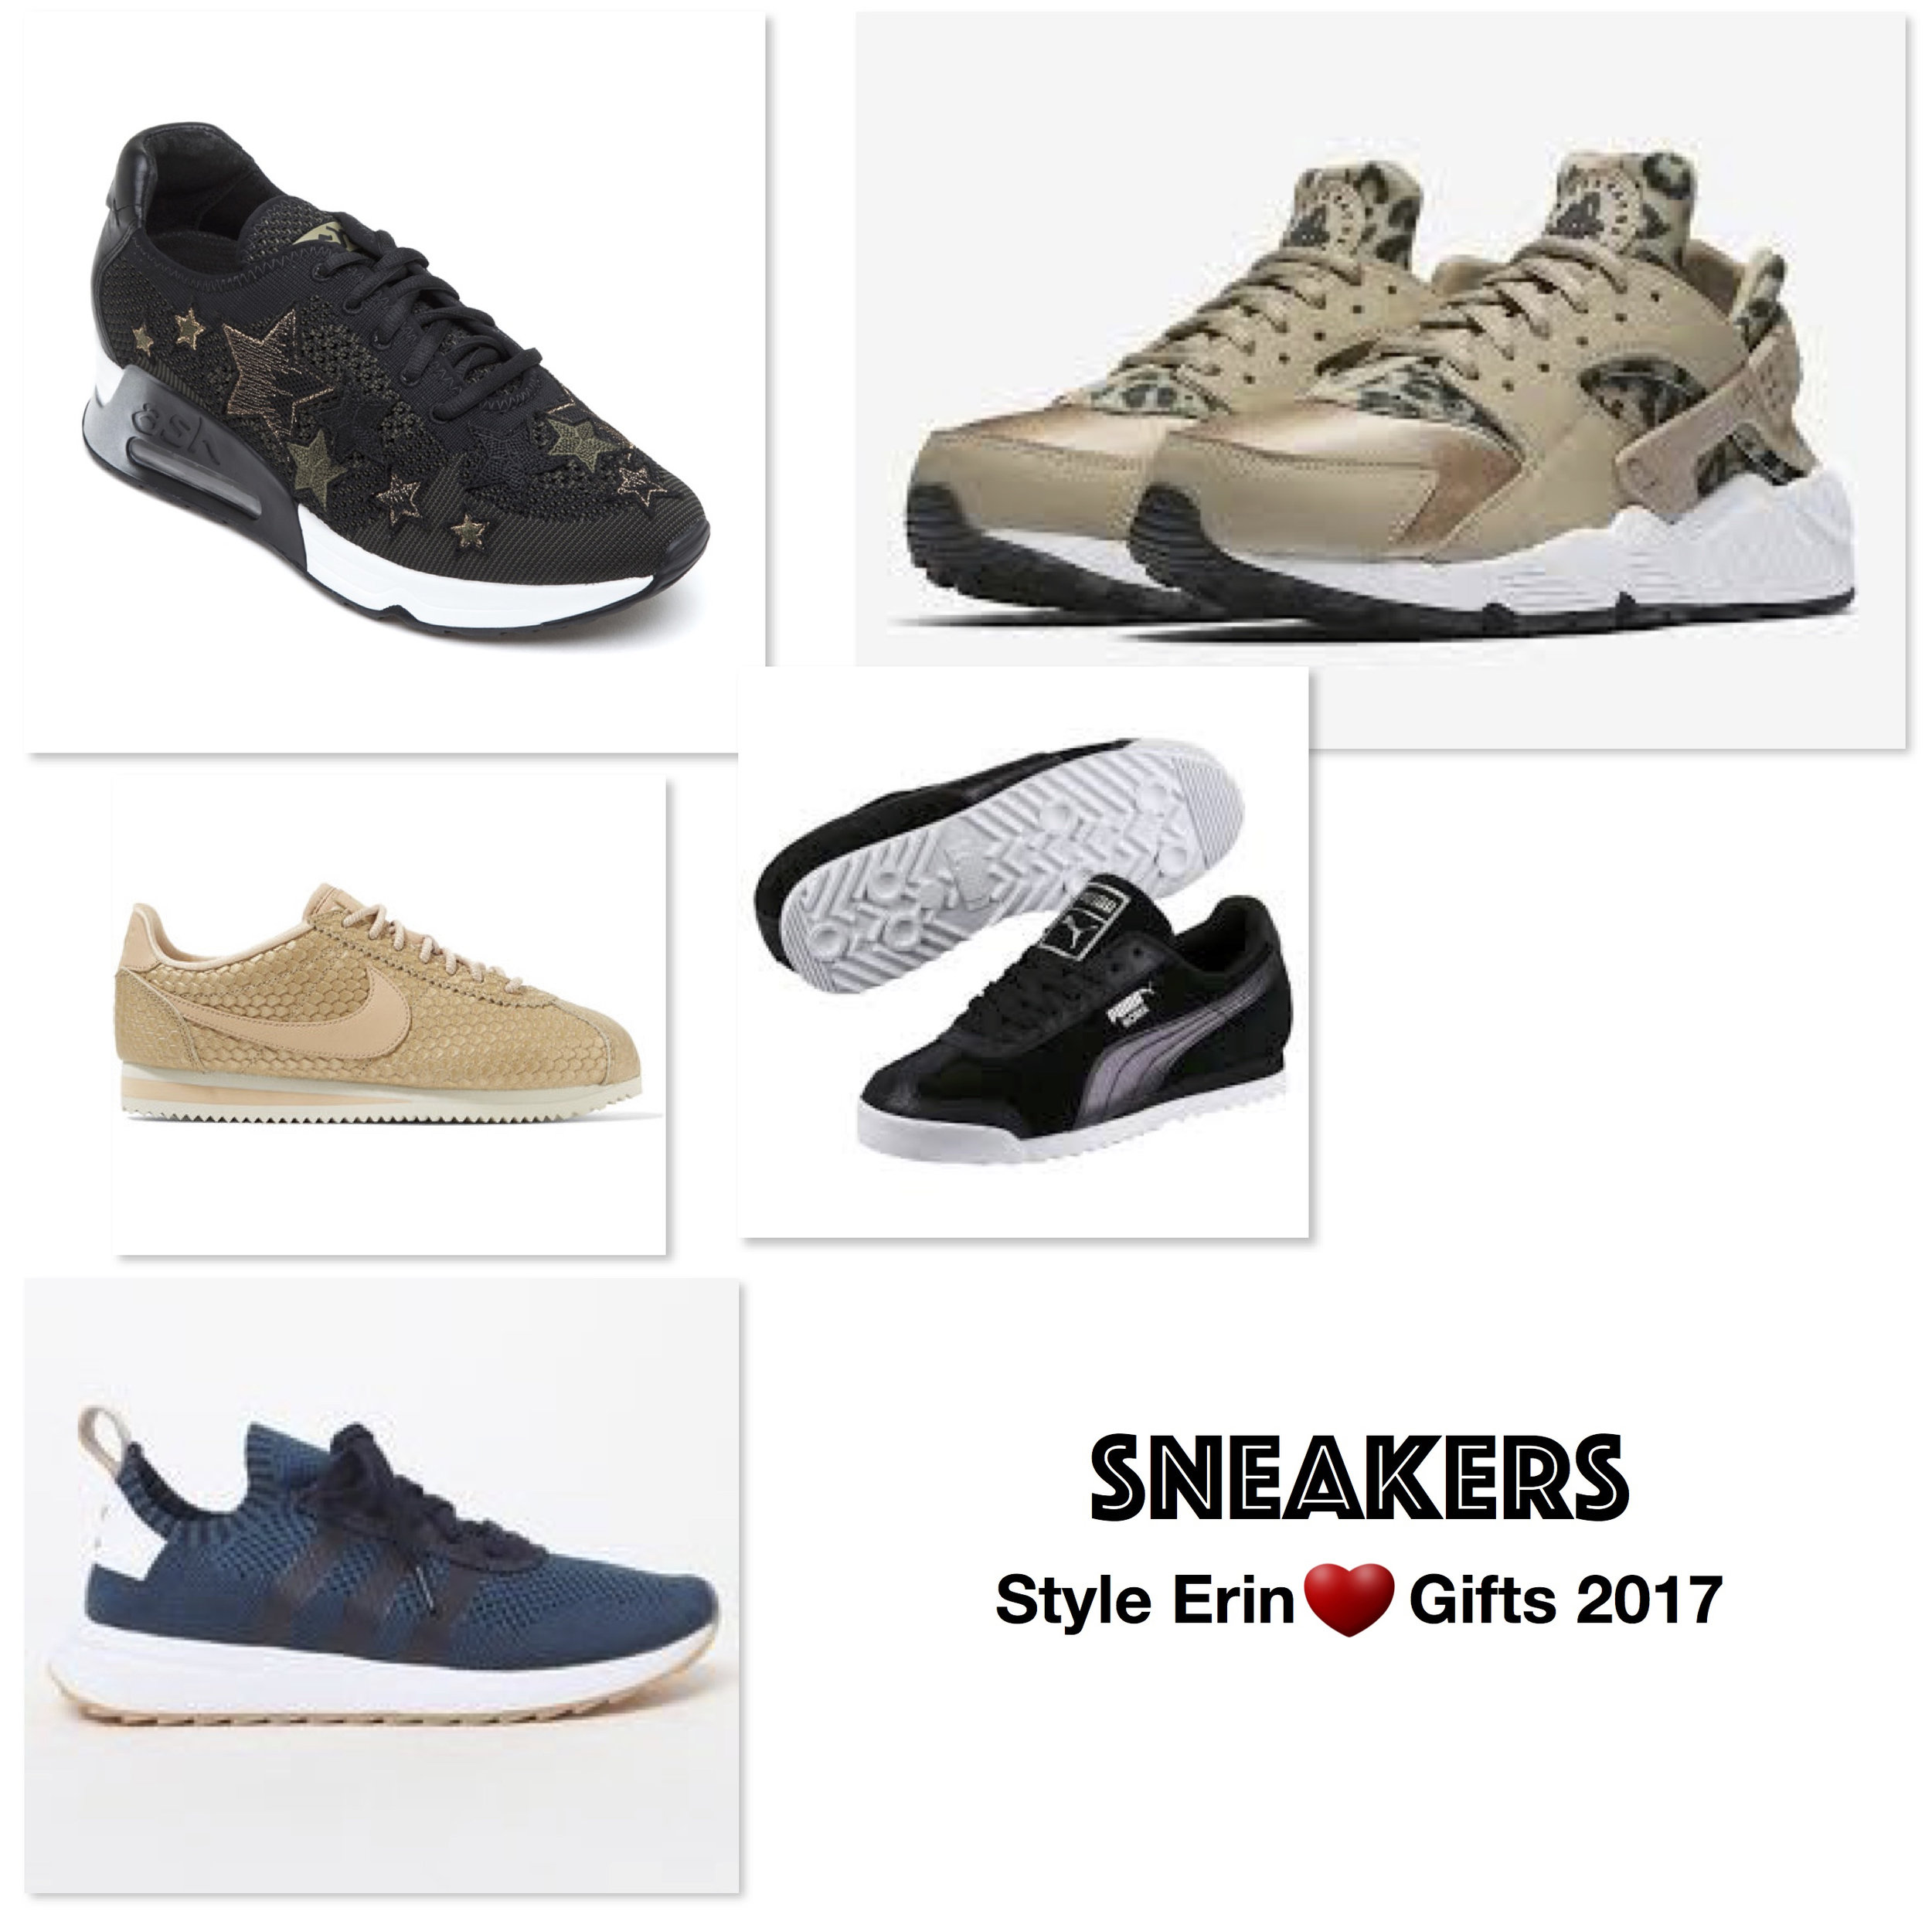 sneakersgifts-website.jpg